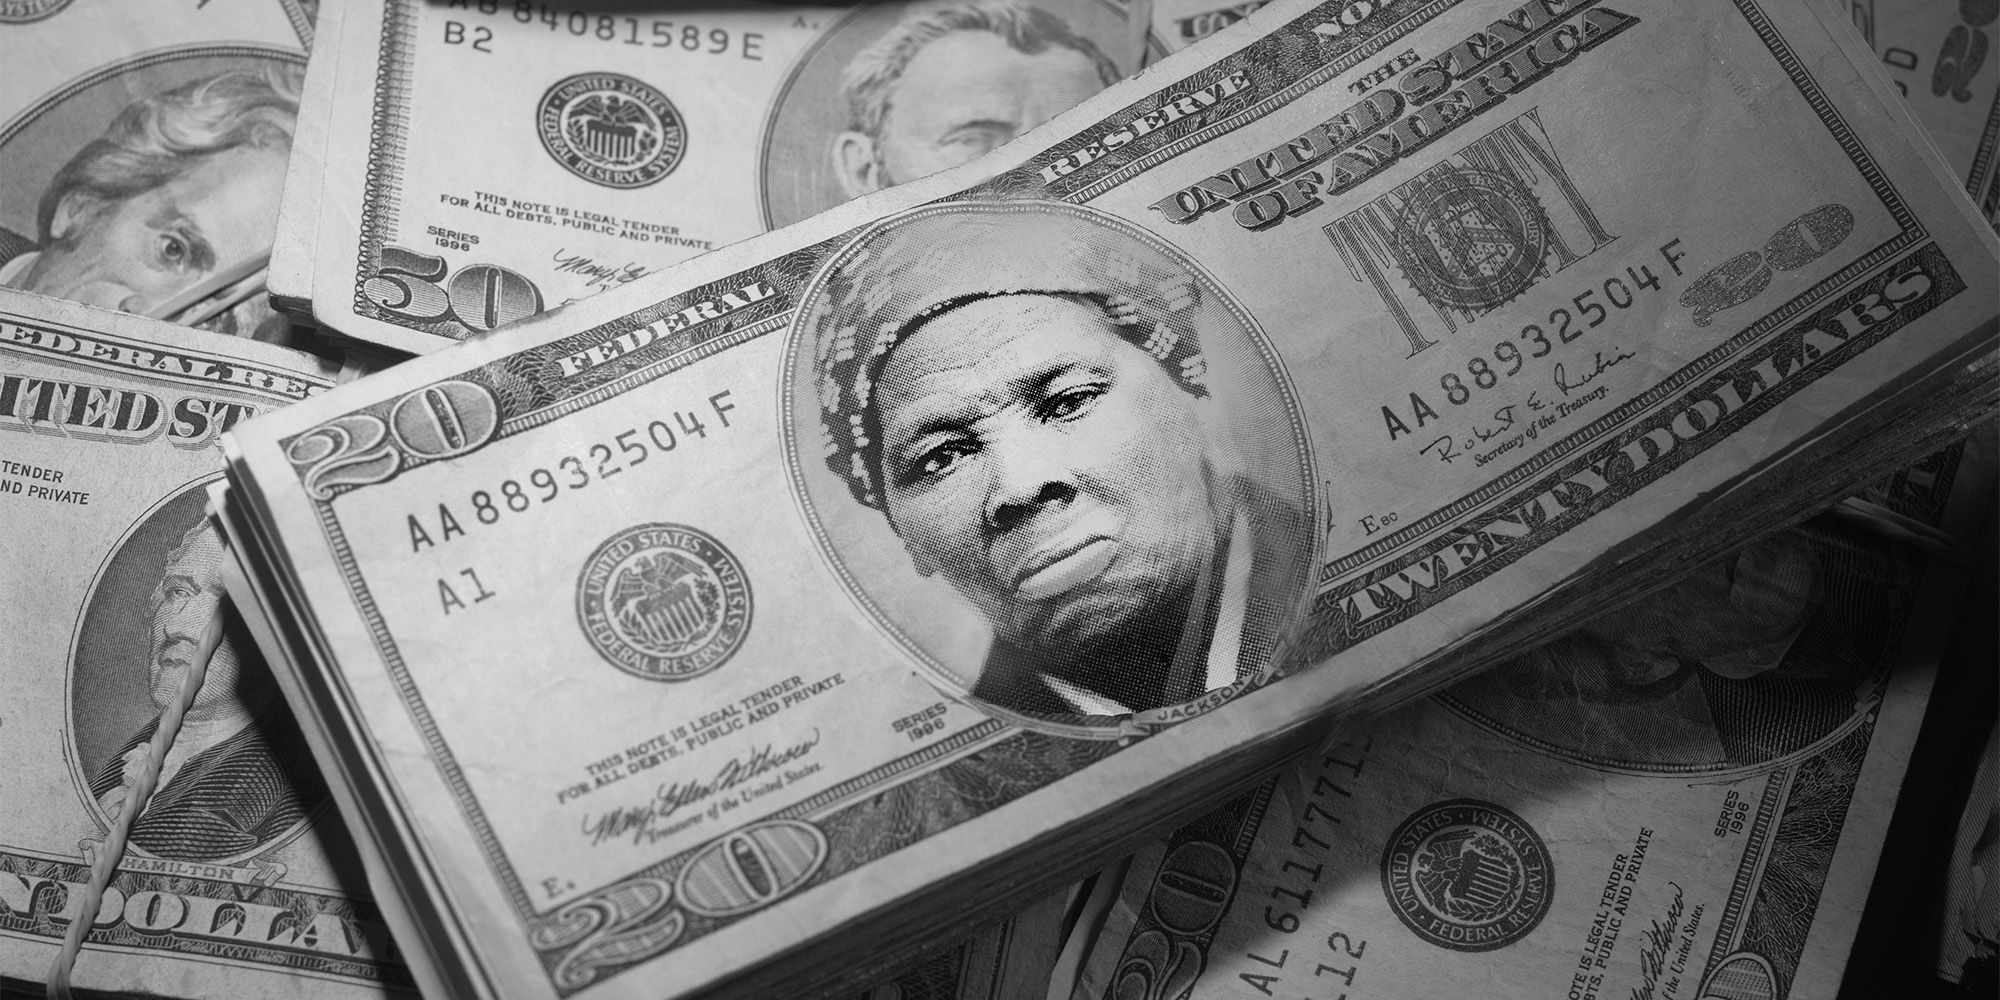 Why Harriet Tubman Should Replace Andrew Jackson On The 20 Bill